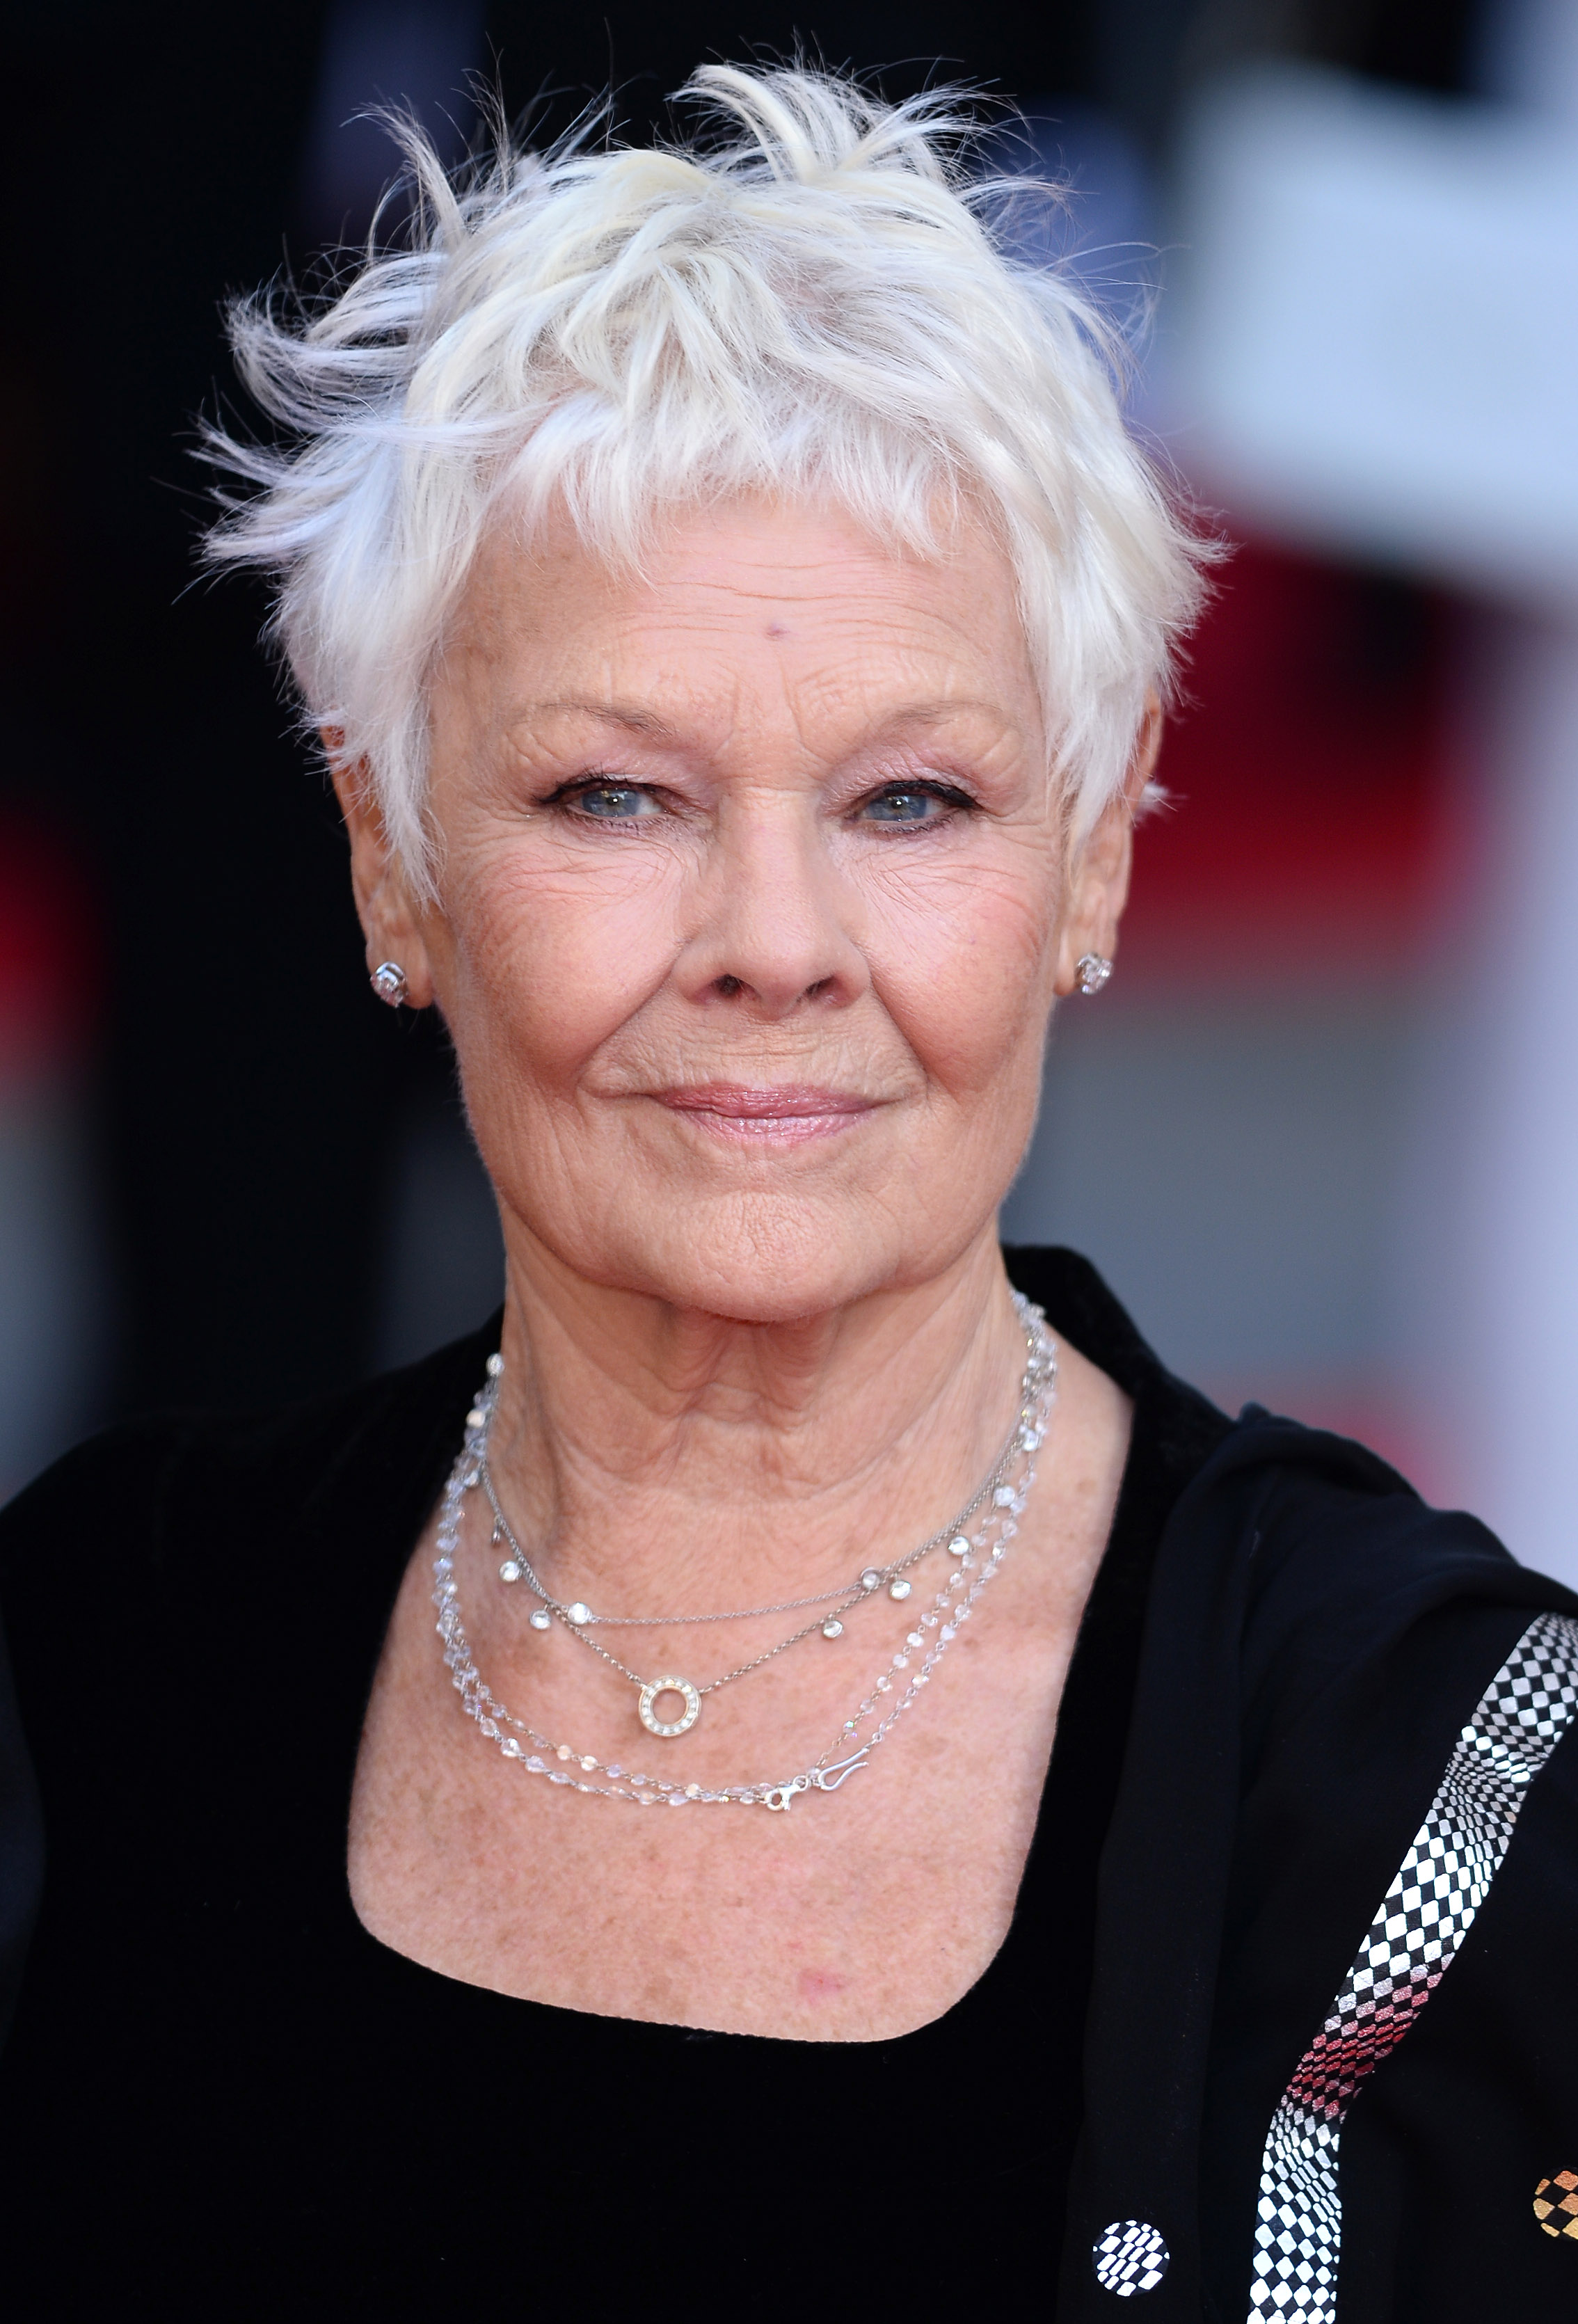 15 doubts about judi dench hairstyle you should clarify